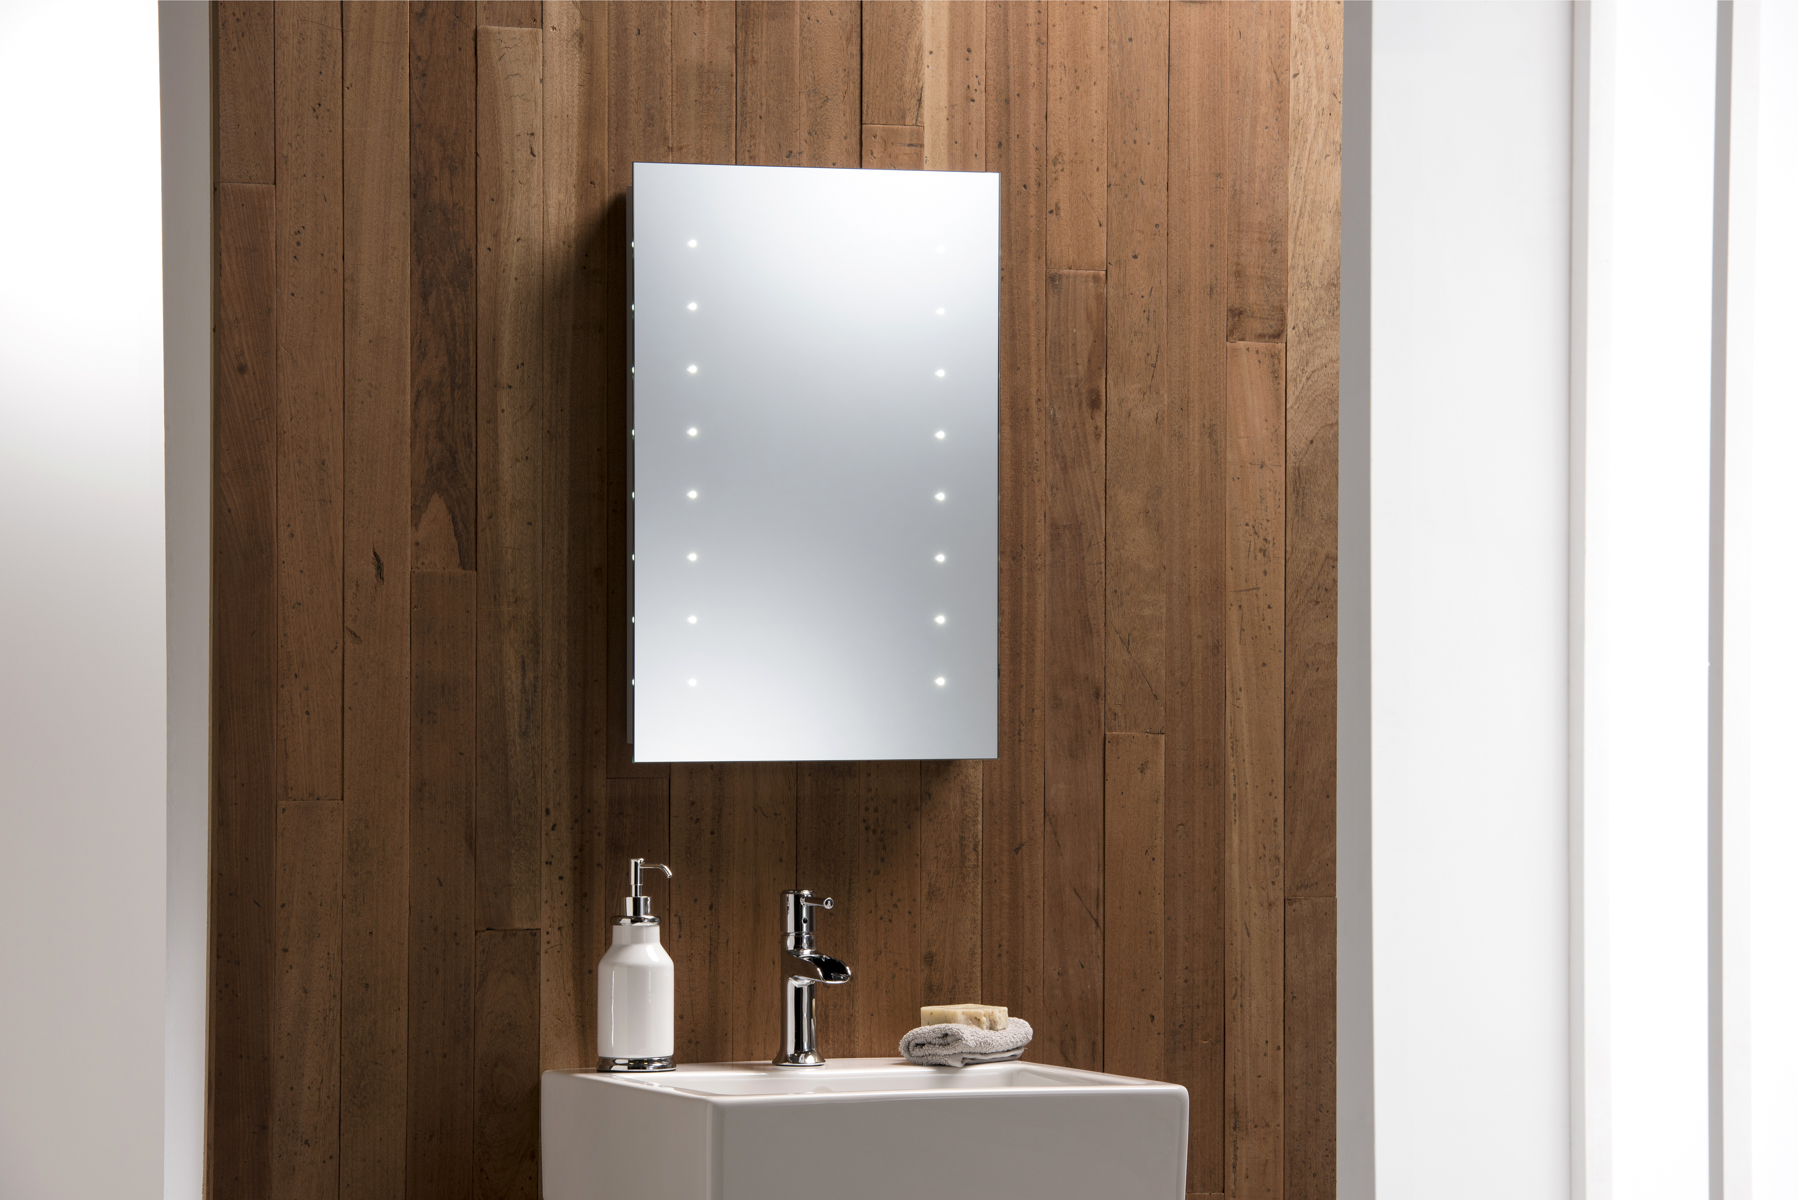 Stunning led bathroom mirror battery illuminated 60 x 40 easy installation ebay Neue design bathroom mirror